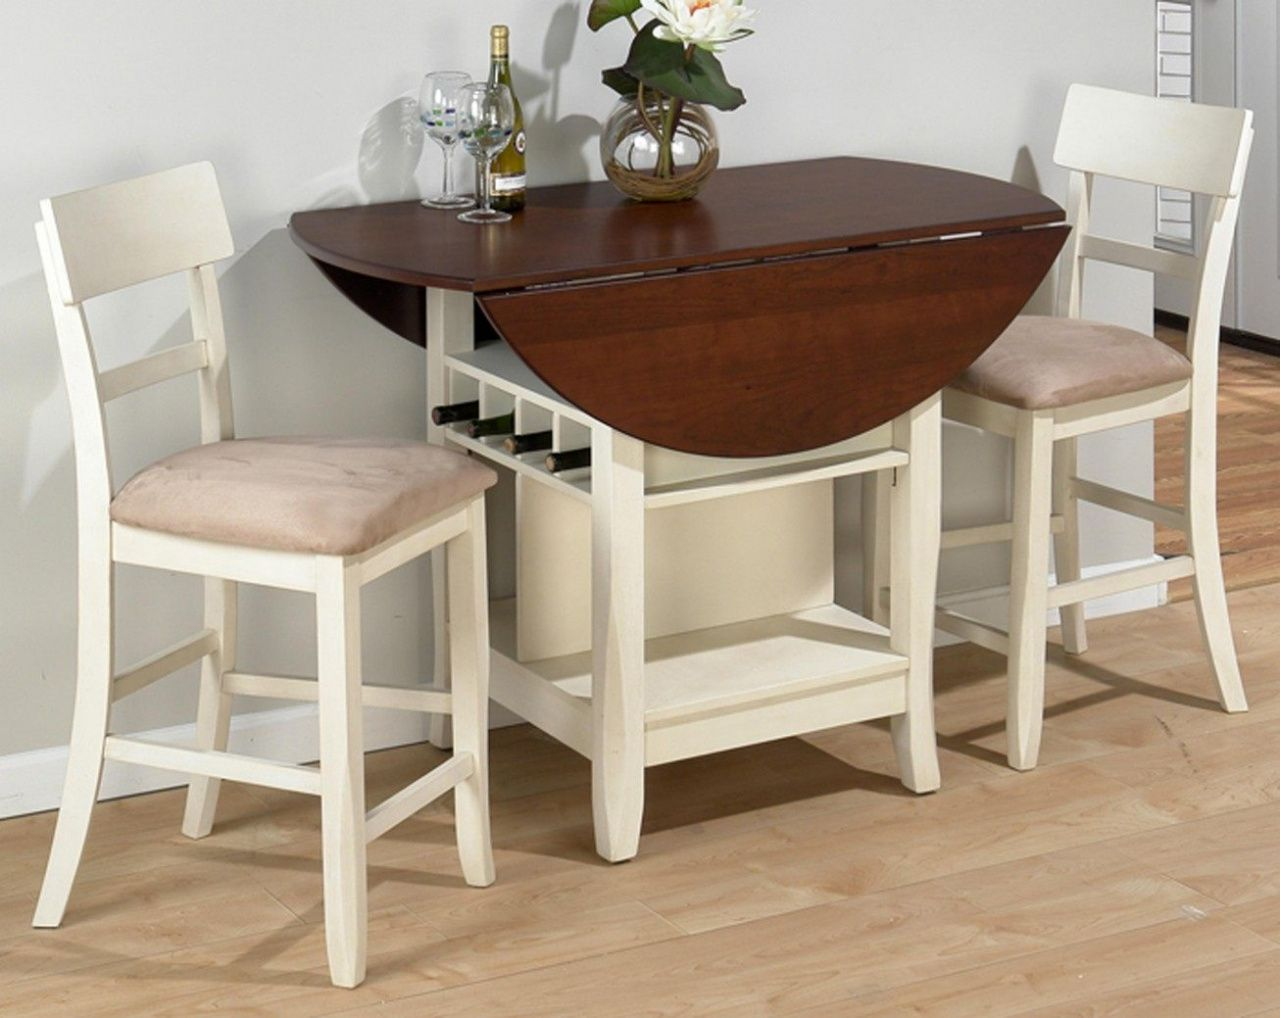 Cheap Small Kitchen Table - Home Office Desk Furniture Check more at ...